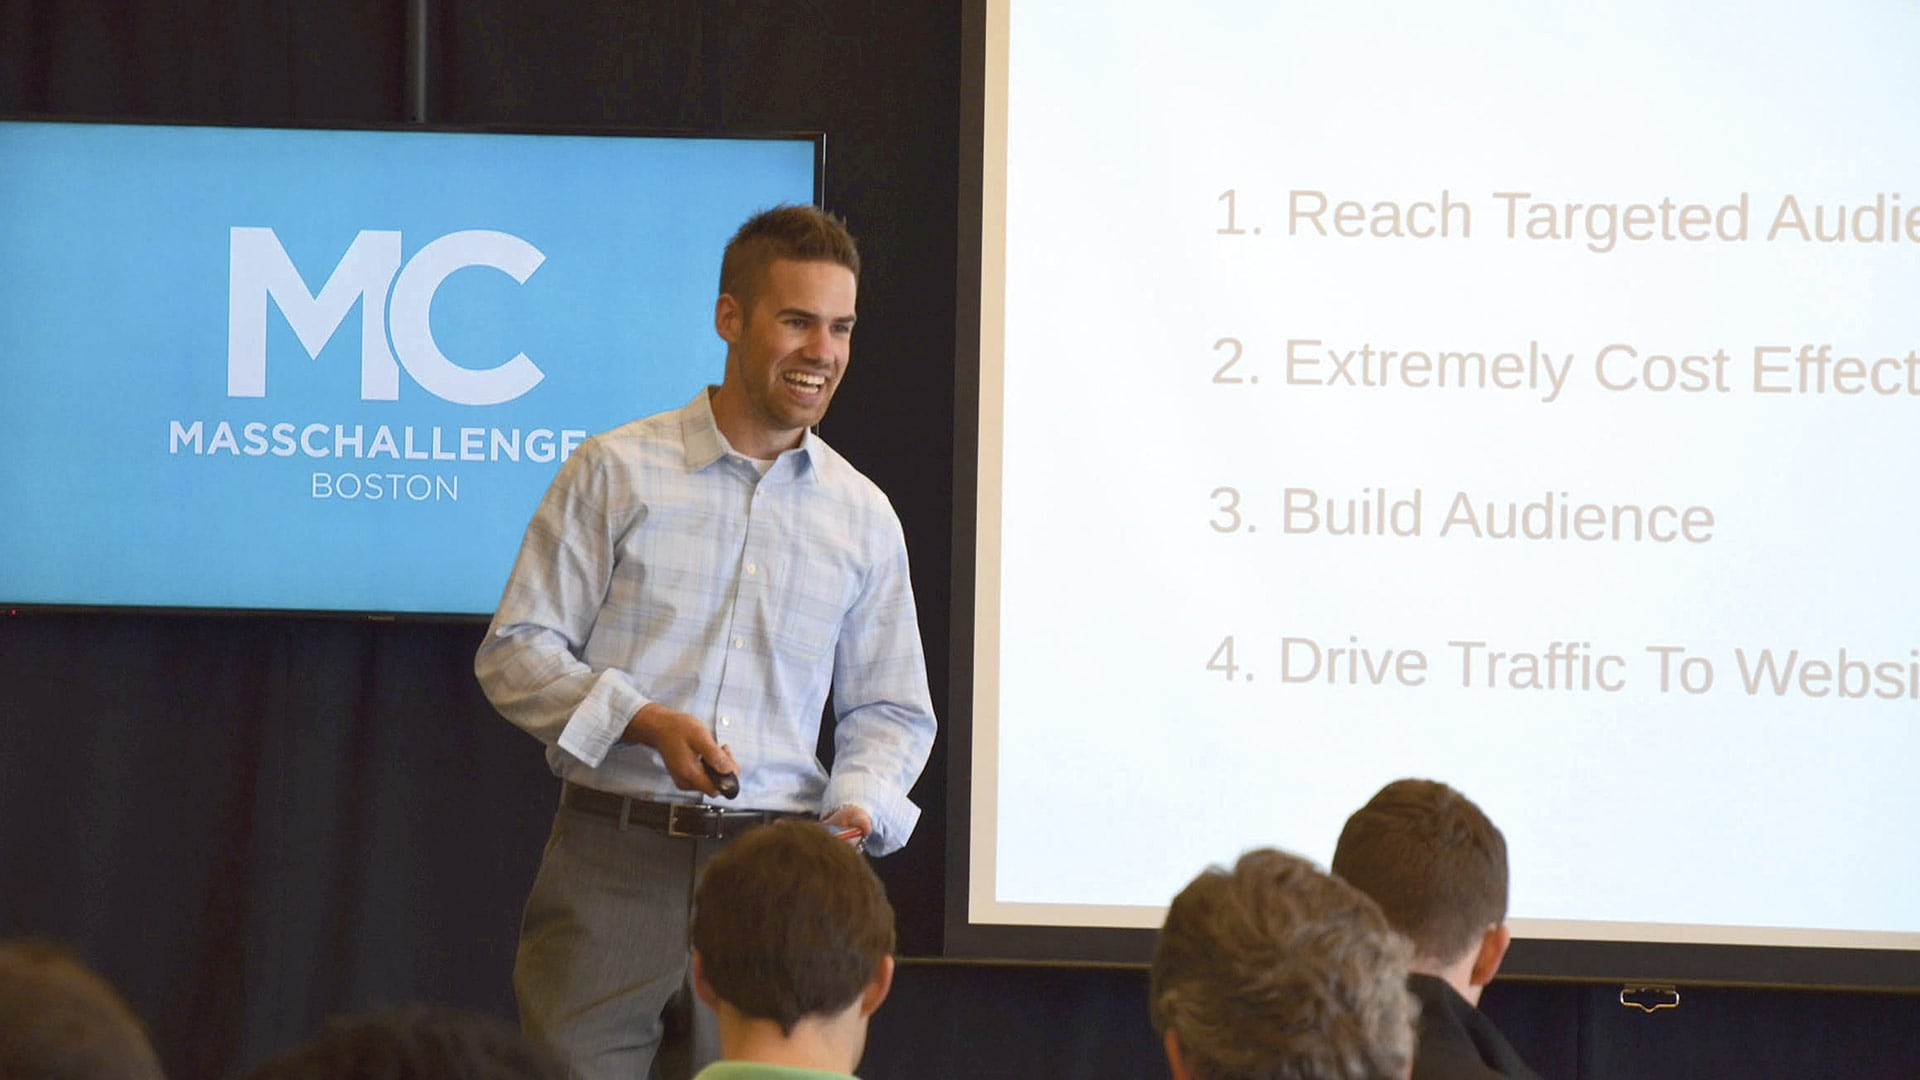 James Garvey, seen here presenting at a MassChallenge event